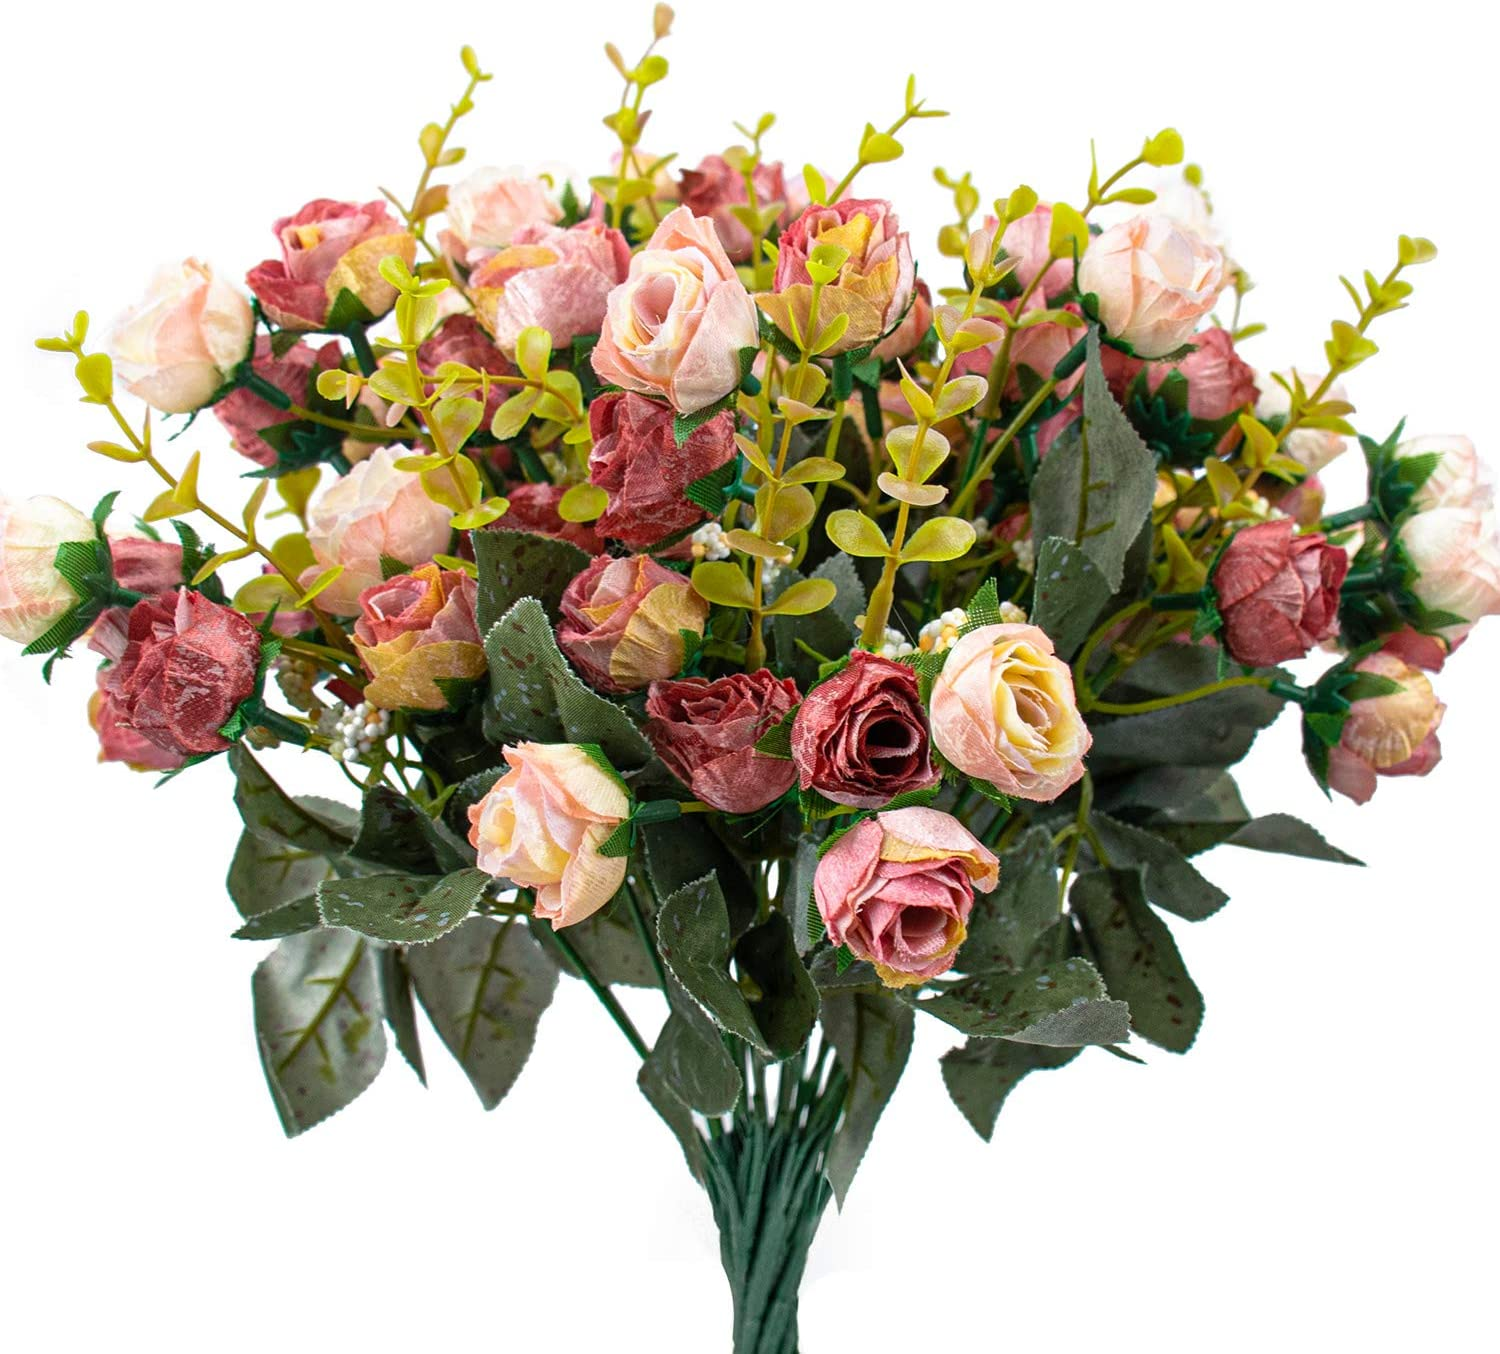 Foraineam 4 Pack Artificial Flowers Flower Bouque Los Angeles Mall Rose Sale price Silk Fake